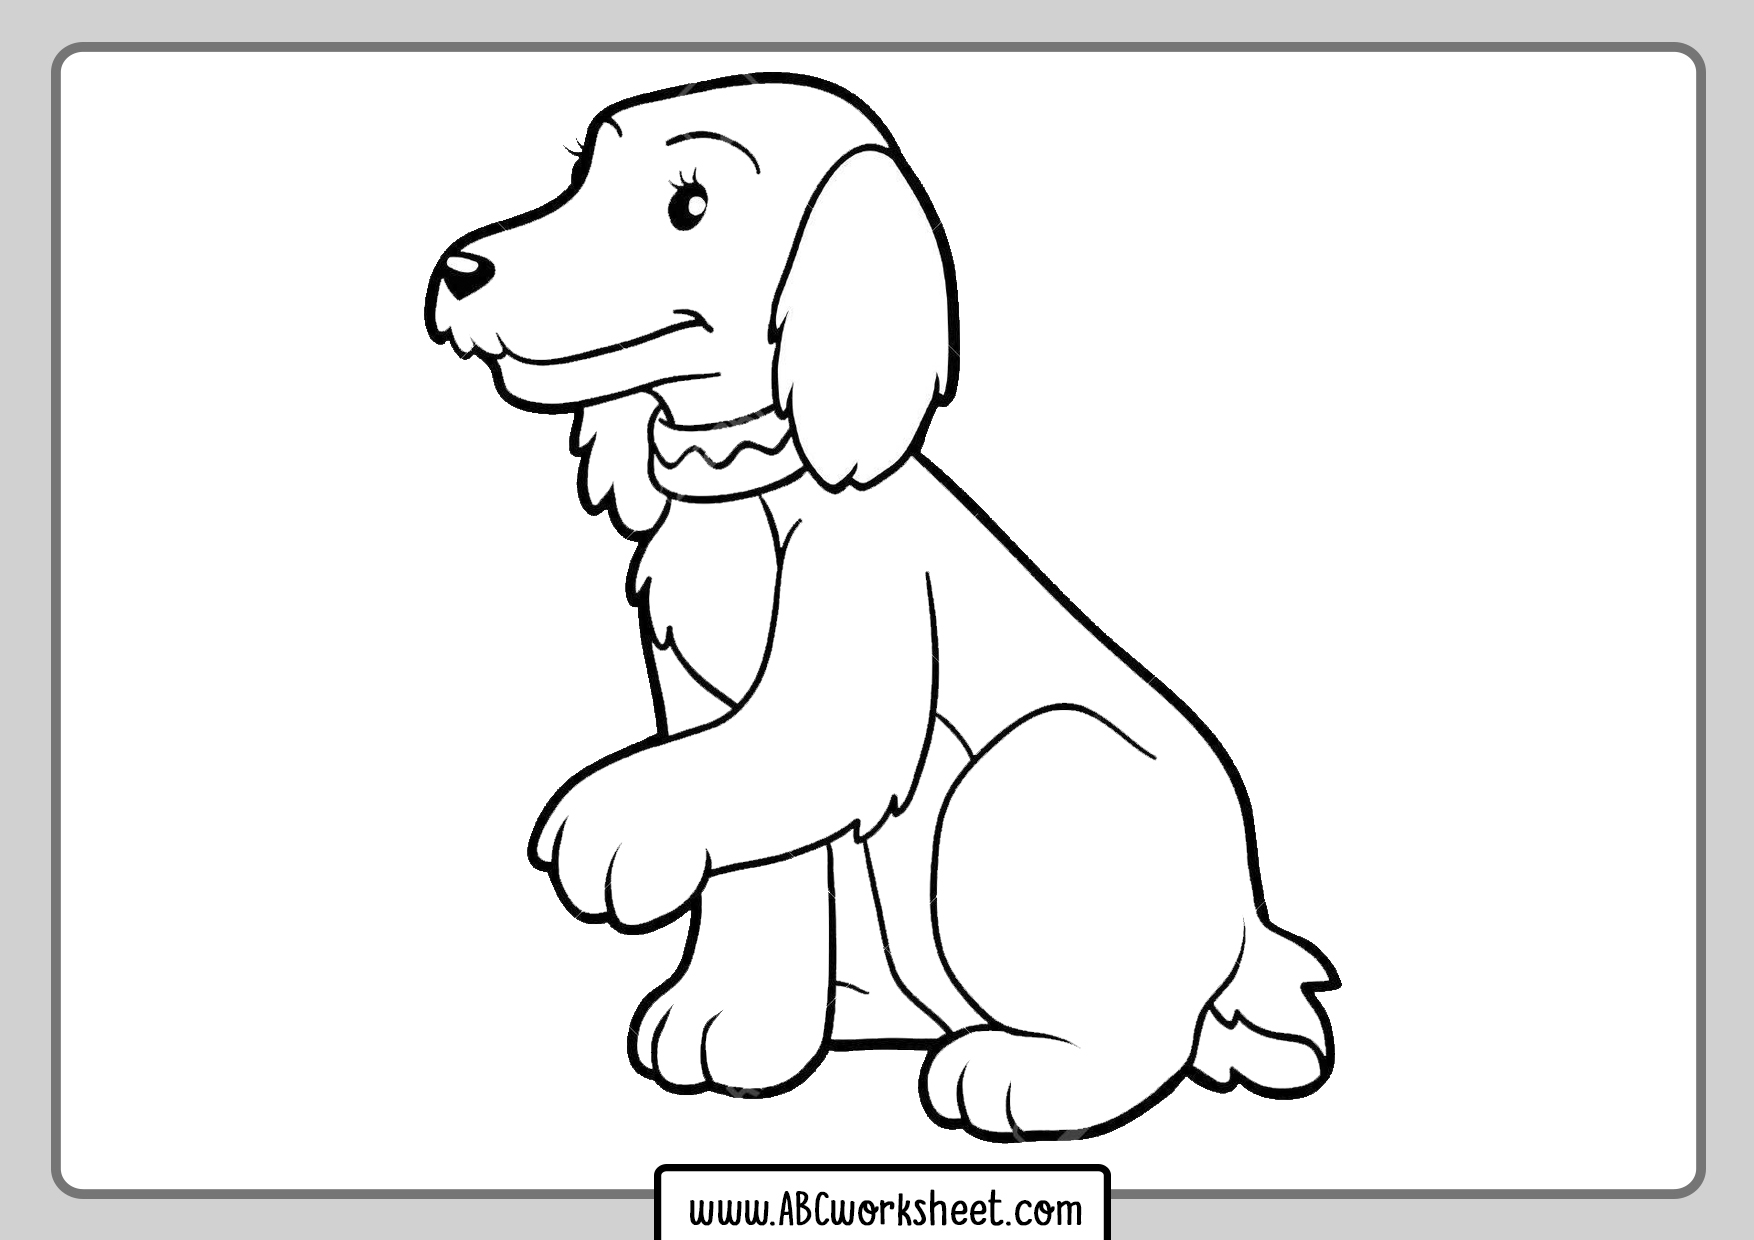 Dogs Coloring Sheets